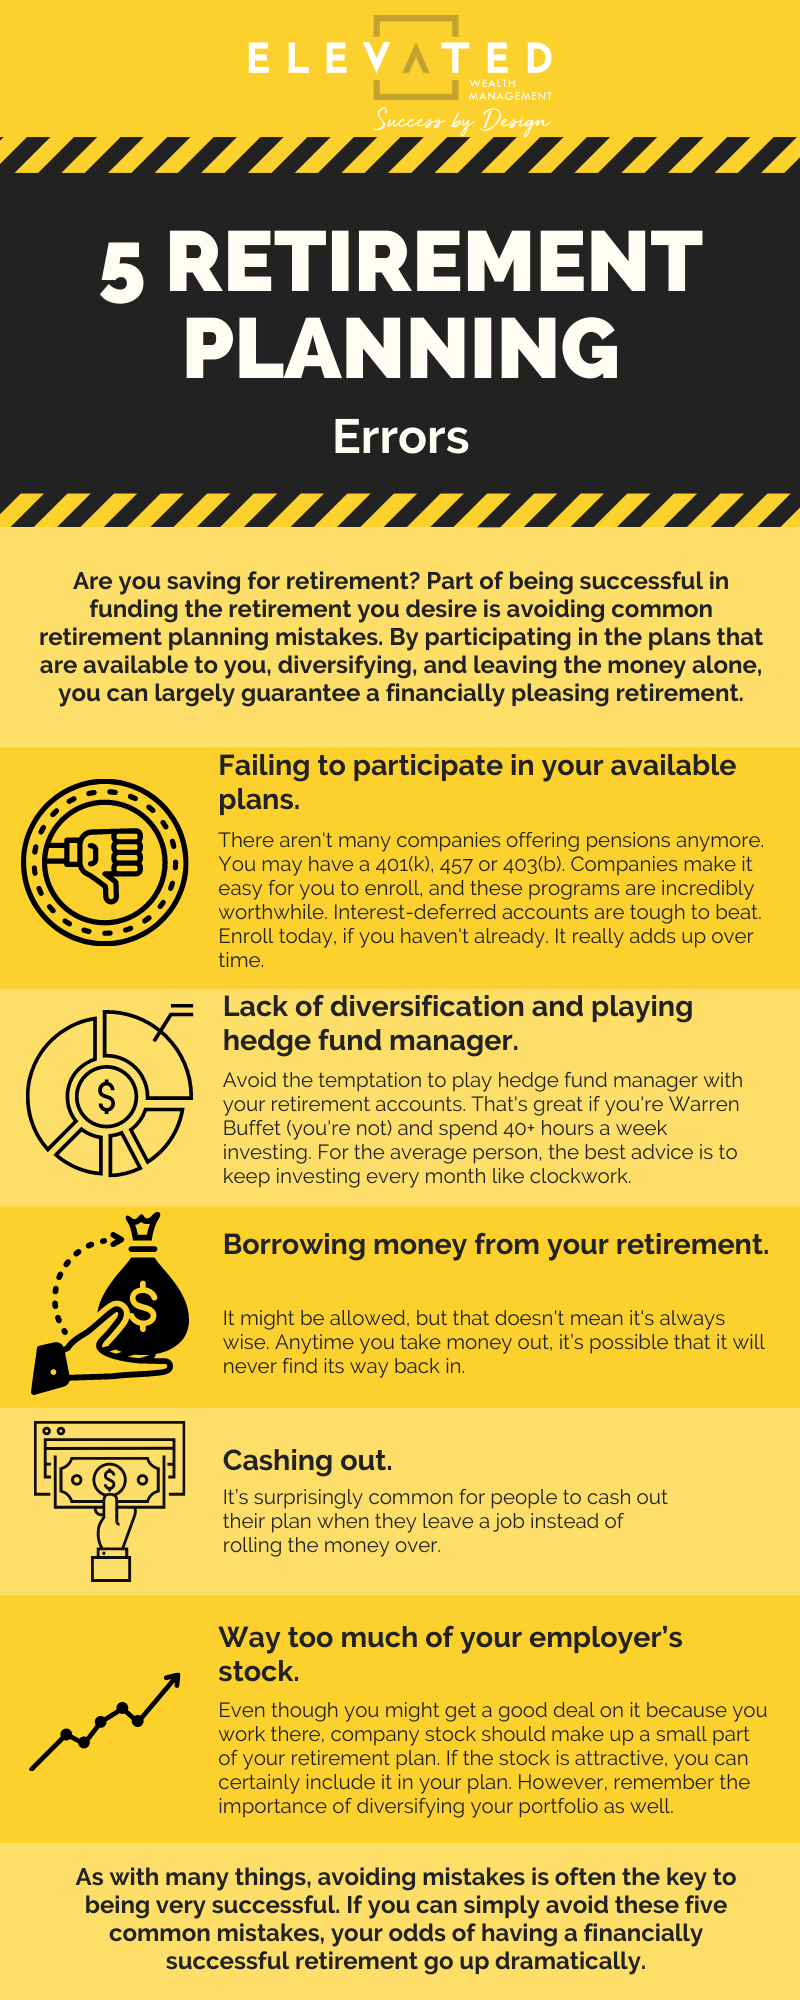 Are you saving for retirement? Part of being successful in funding the retirement you desire is avoiding common retirement planning mistakes. By participating in the plans that are available to you, diversifying, and leaving the money alone, you can largely guarantee a financially pleasing retirement.